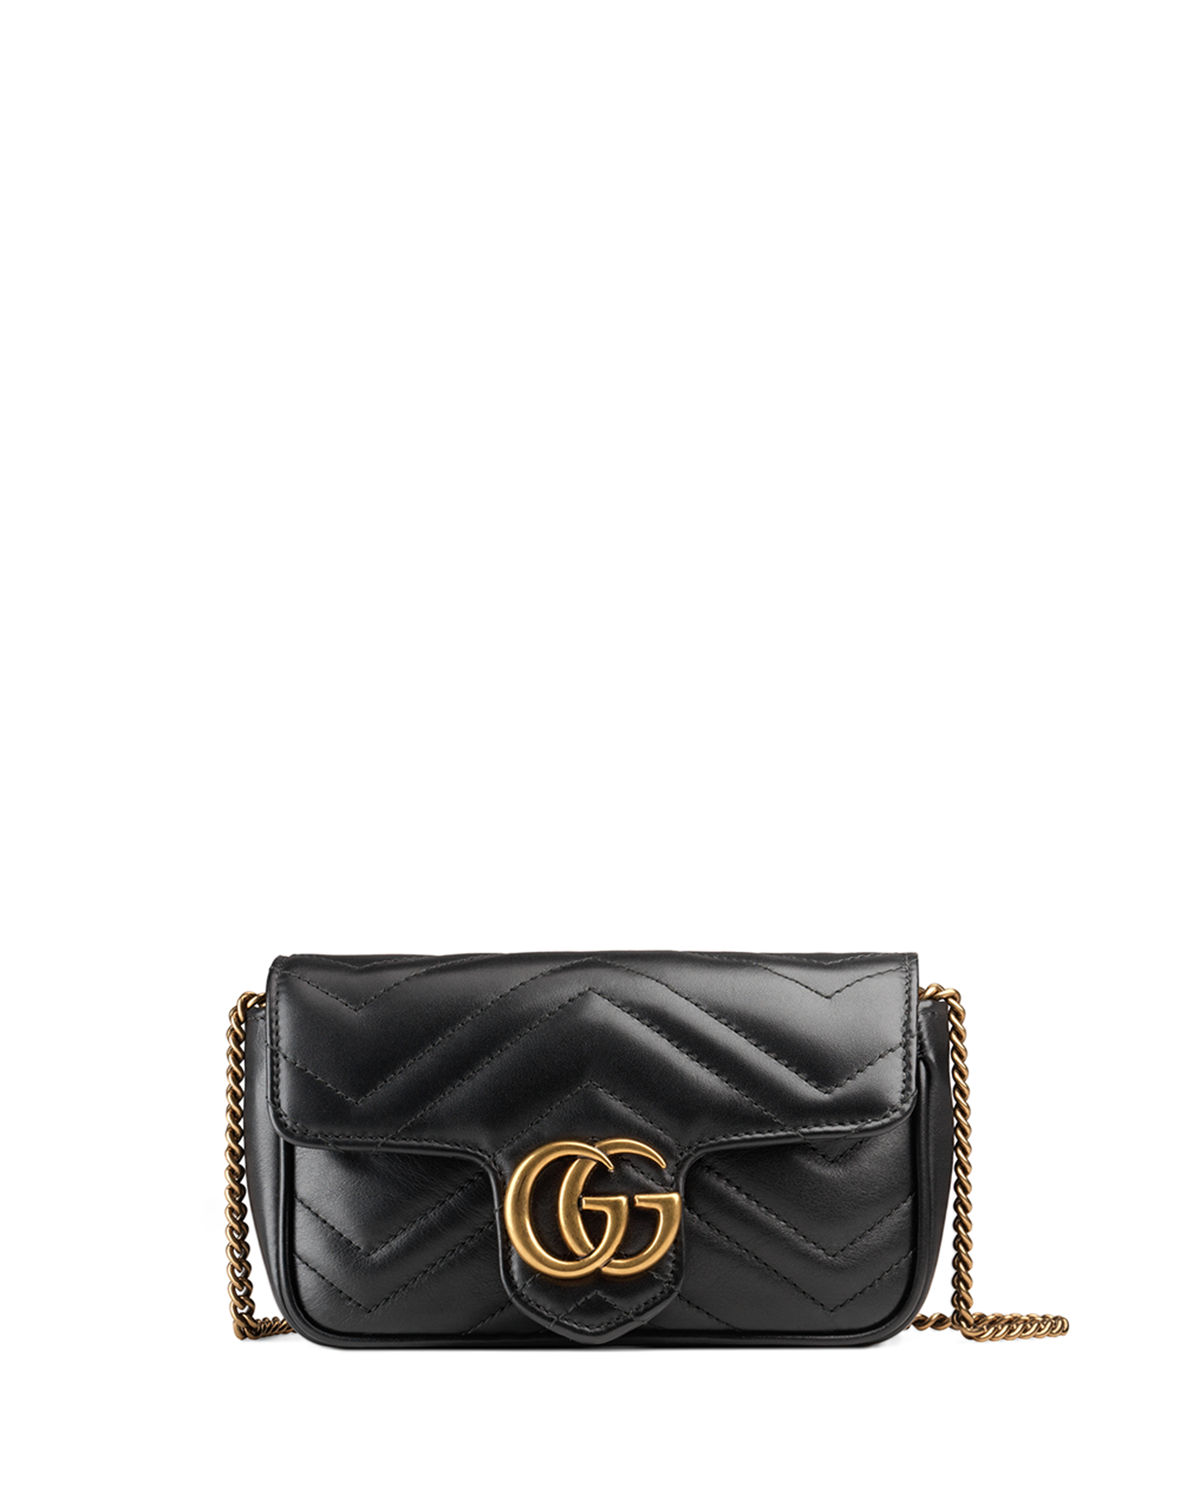 608815e47223 Gucci GG Marmont Matelasse Leather Super Mini Bag | Neiman Marcus